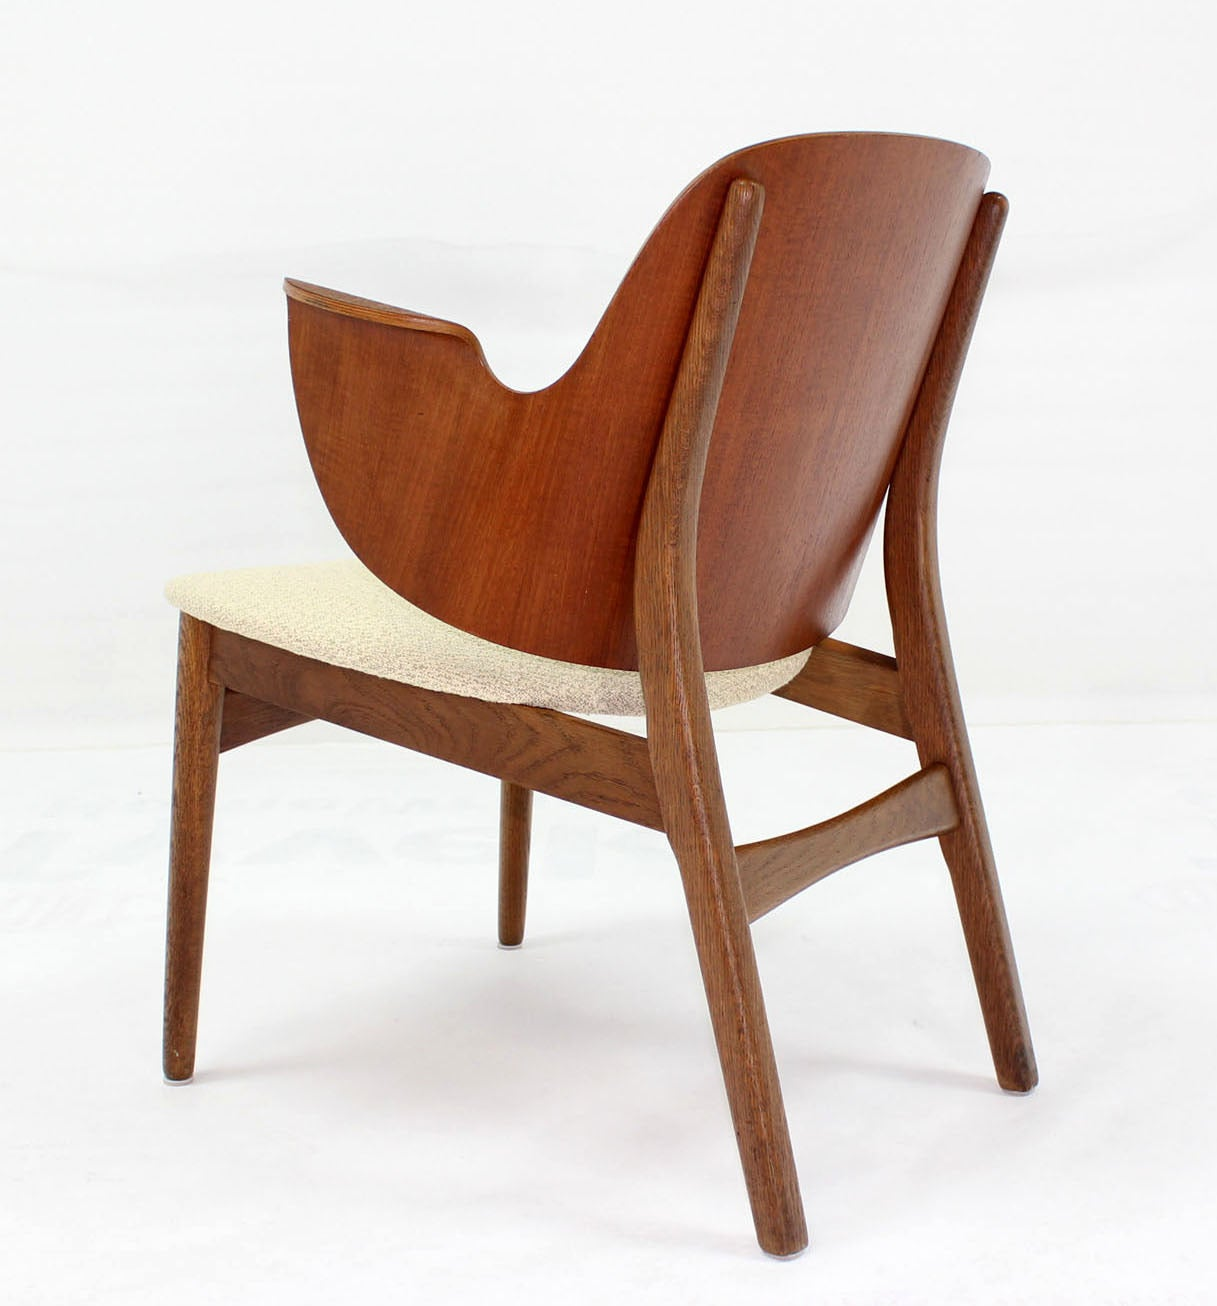 Mid-Century Modern Molded Plywood Barrel Back Armchair New Upholstery. In Excellent Condition For Sale In Blairstown, NJ